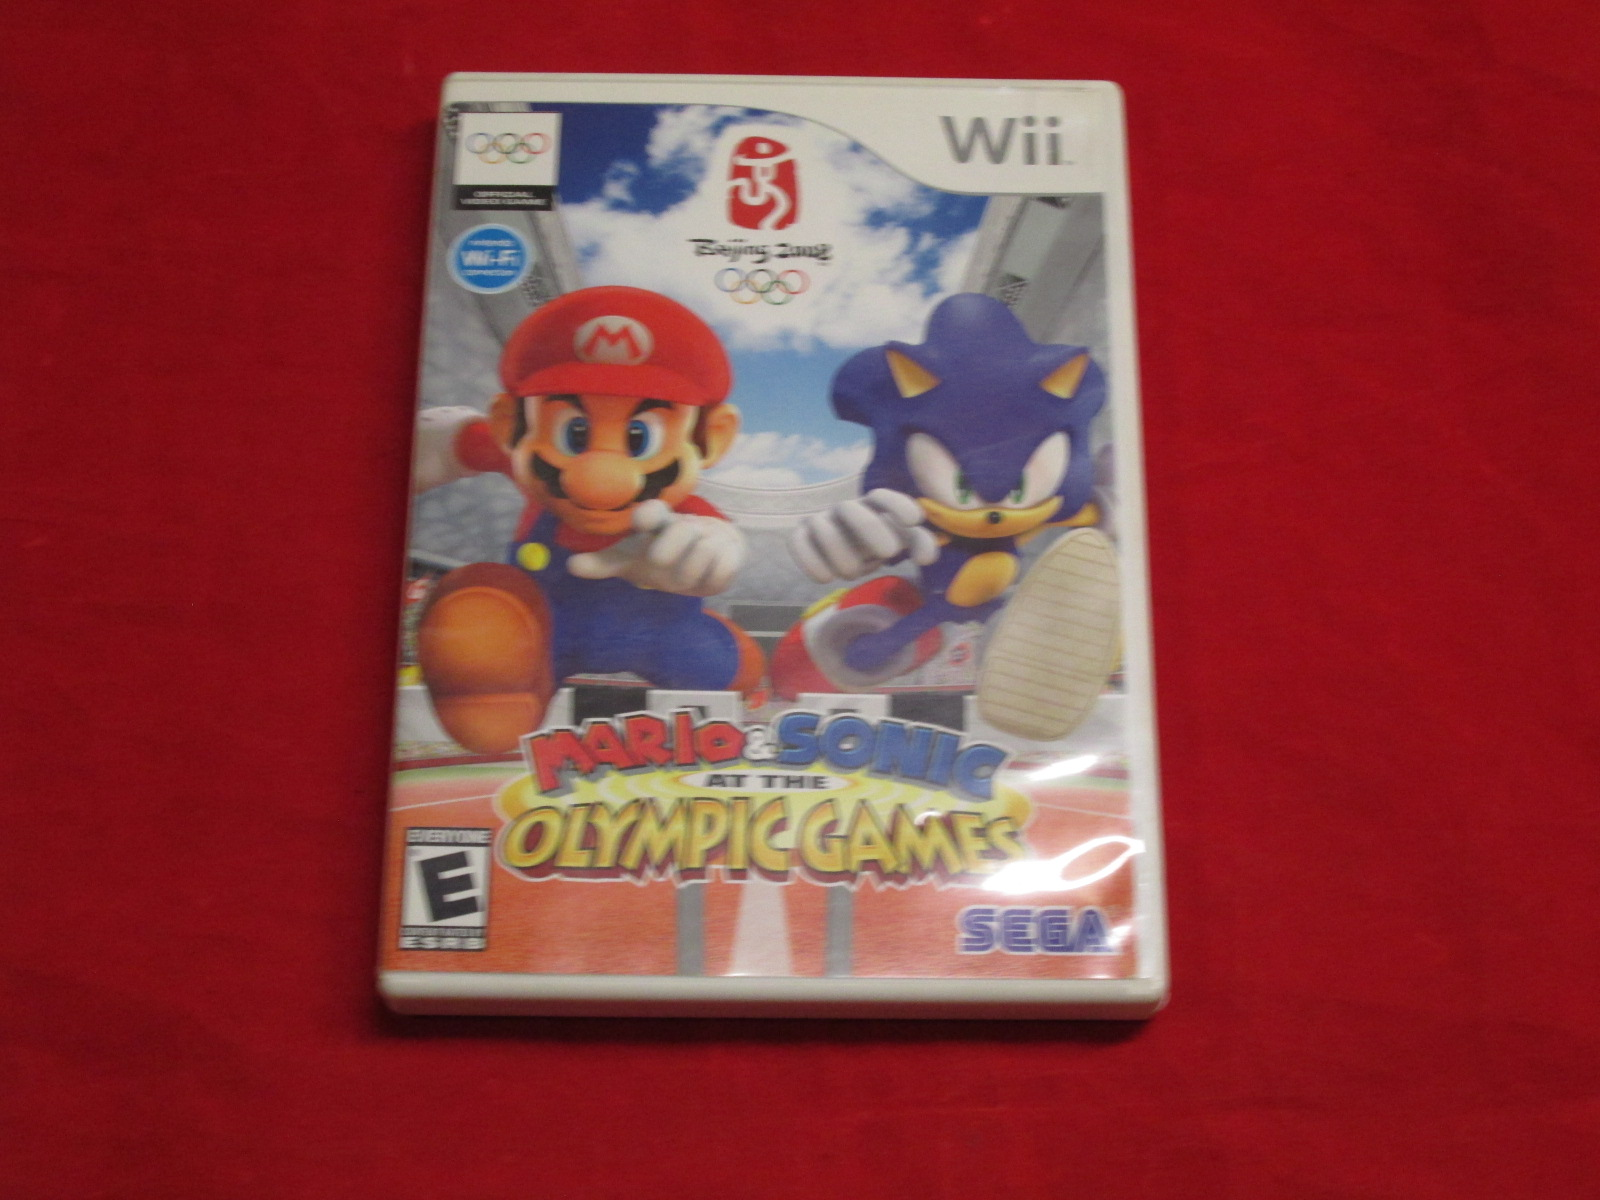 Mario And Sonic At The Olympic Games Nintendo Wii With Manual and Case